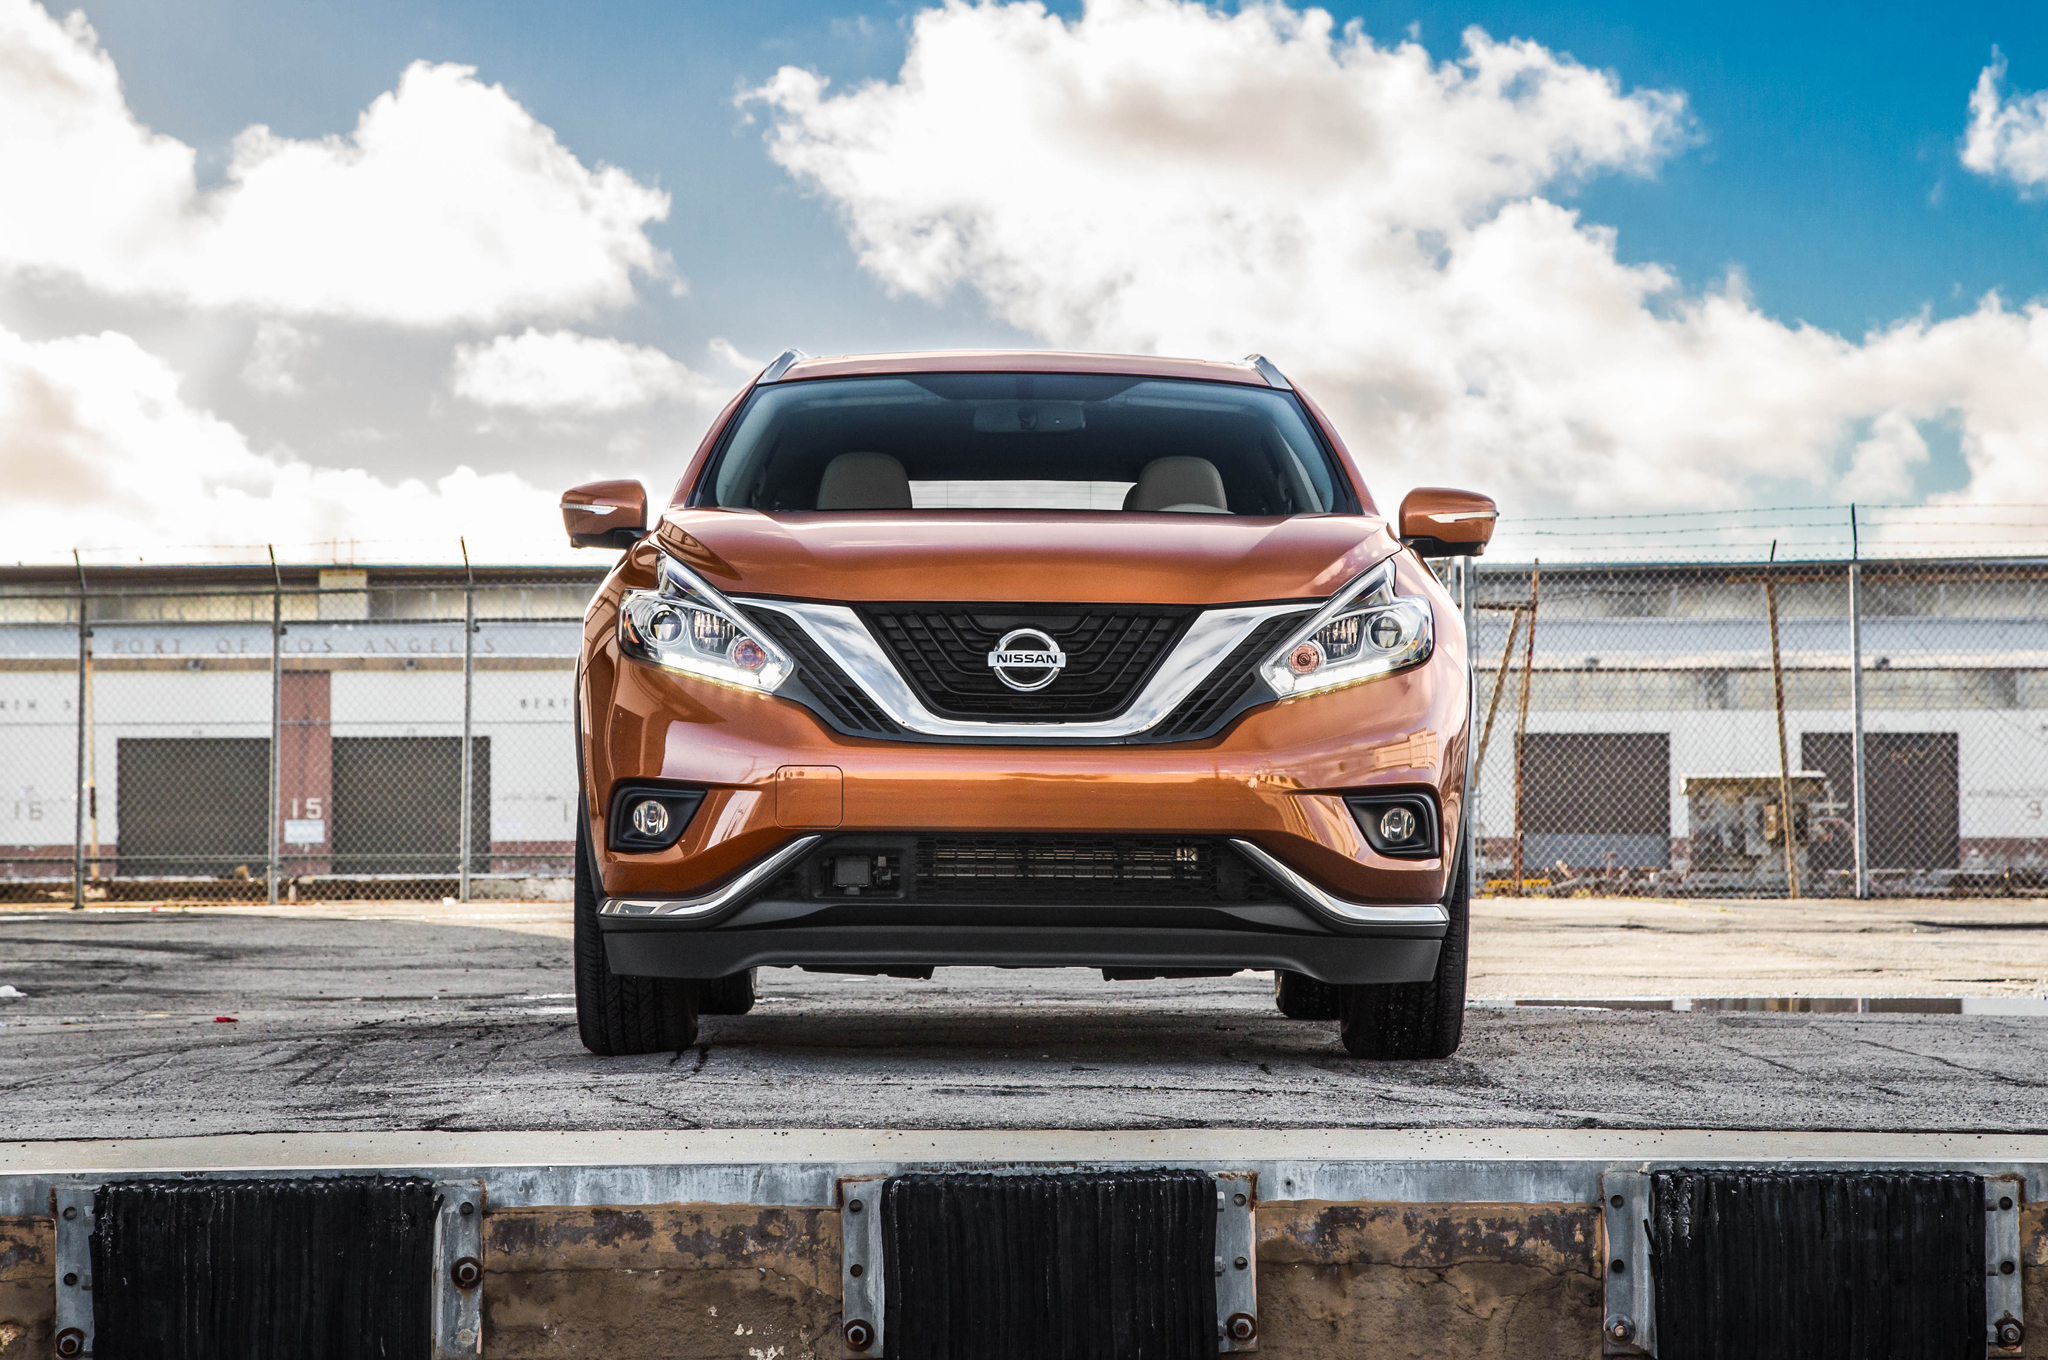 2015 Nissan Murano Front Exterior